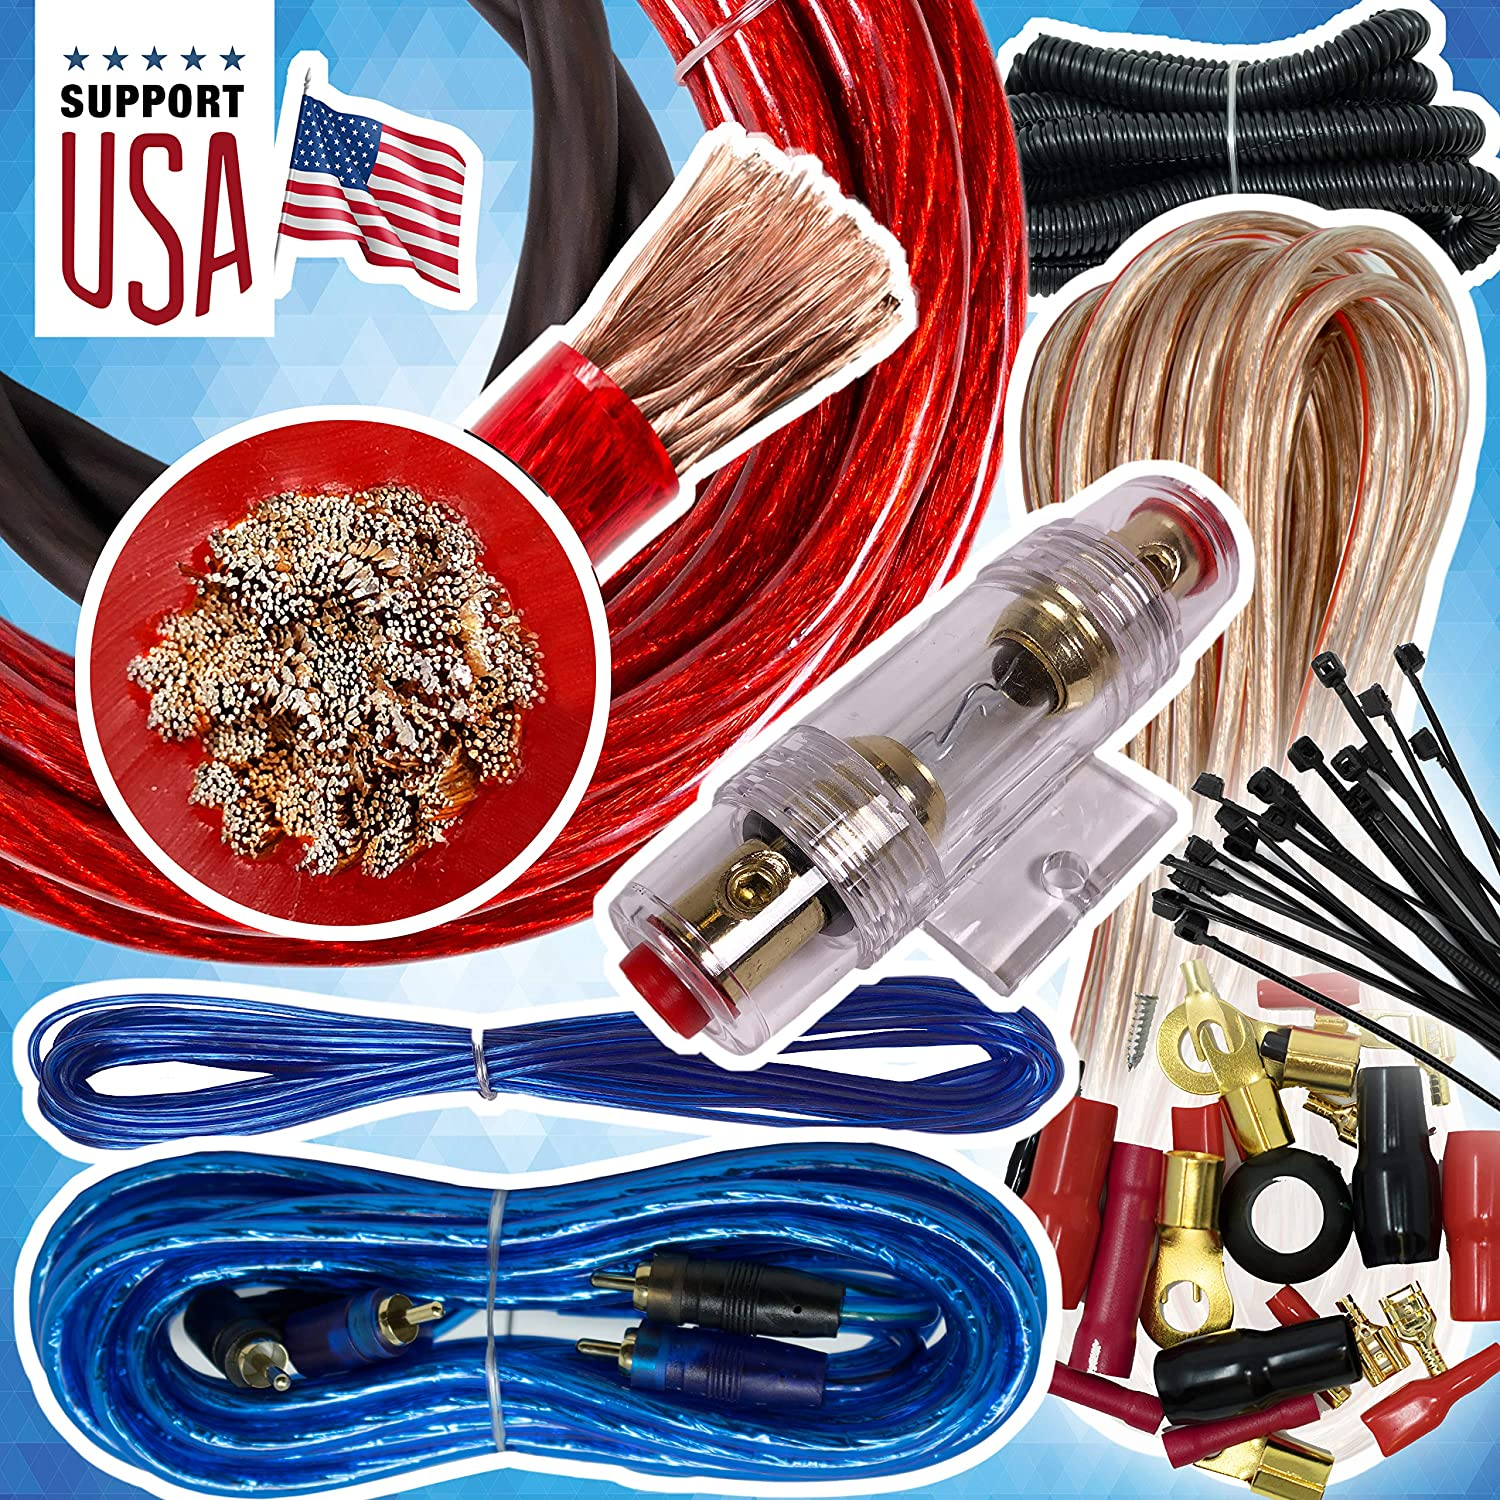 Audio360 USA 4 Gauge Cable 2500W Complete Car Amplifier Installation Power Amp Wiring Kit 4 Ga Red for Car Stereo